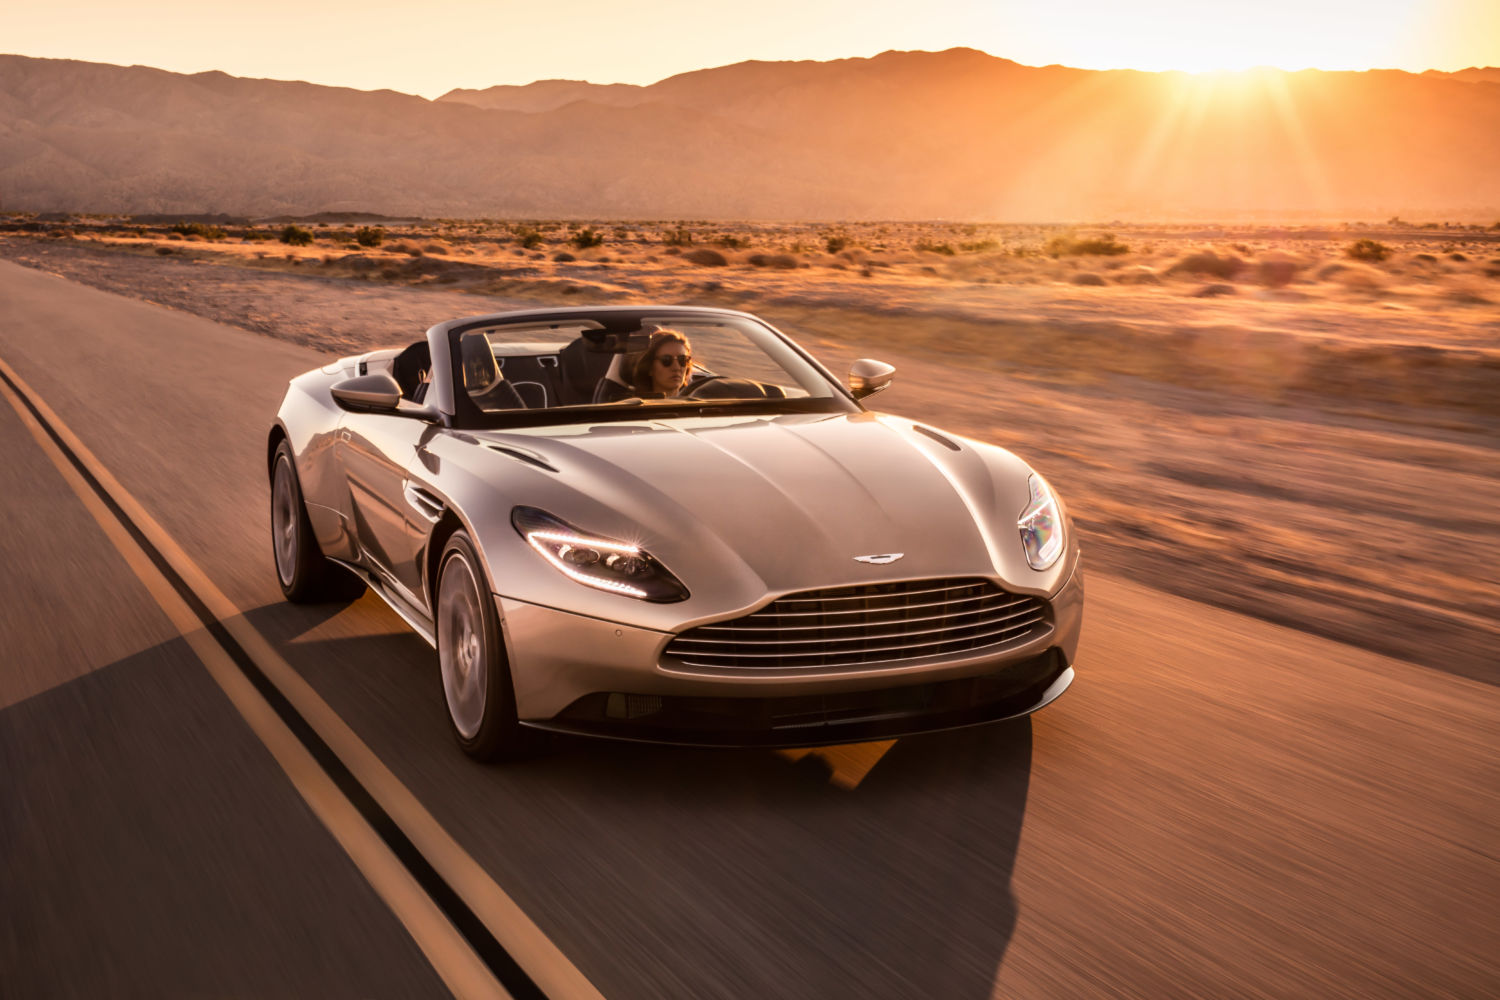 aston martin db11 volante has an amg v8 engine and great looks. Black Bedroom Furniture Sets. Home Design Ideas